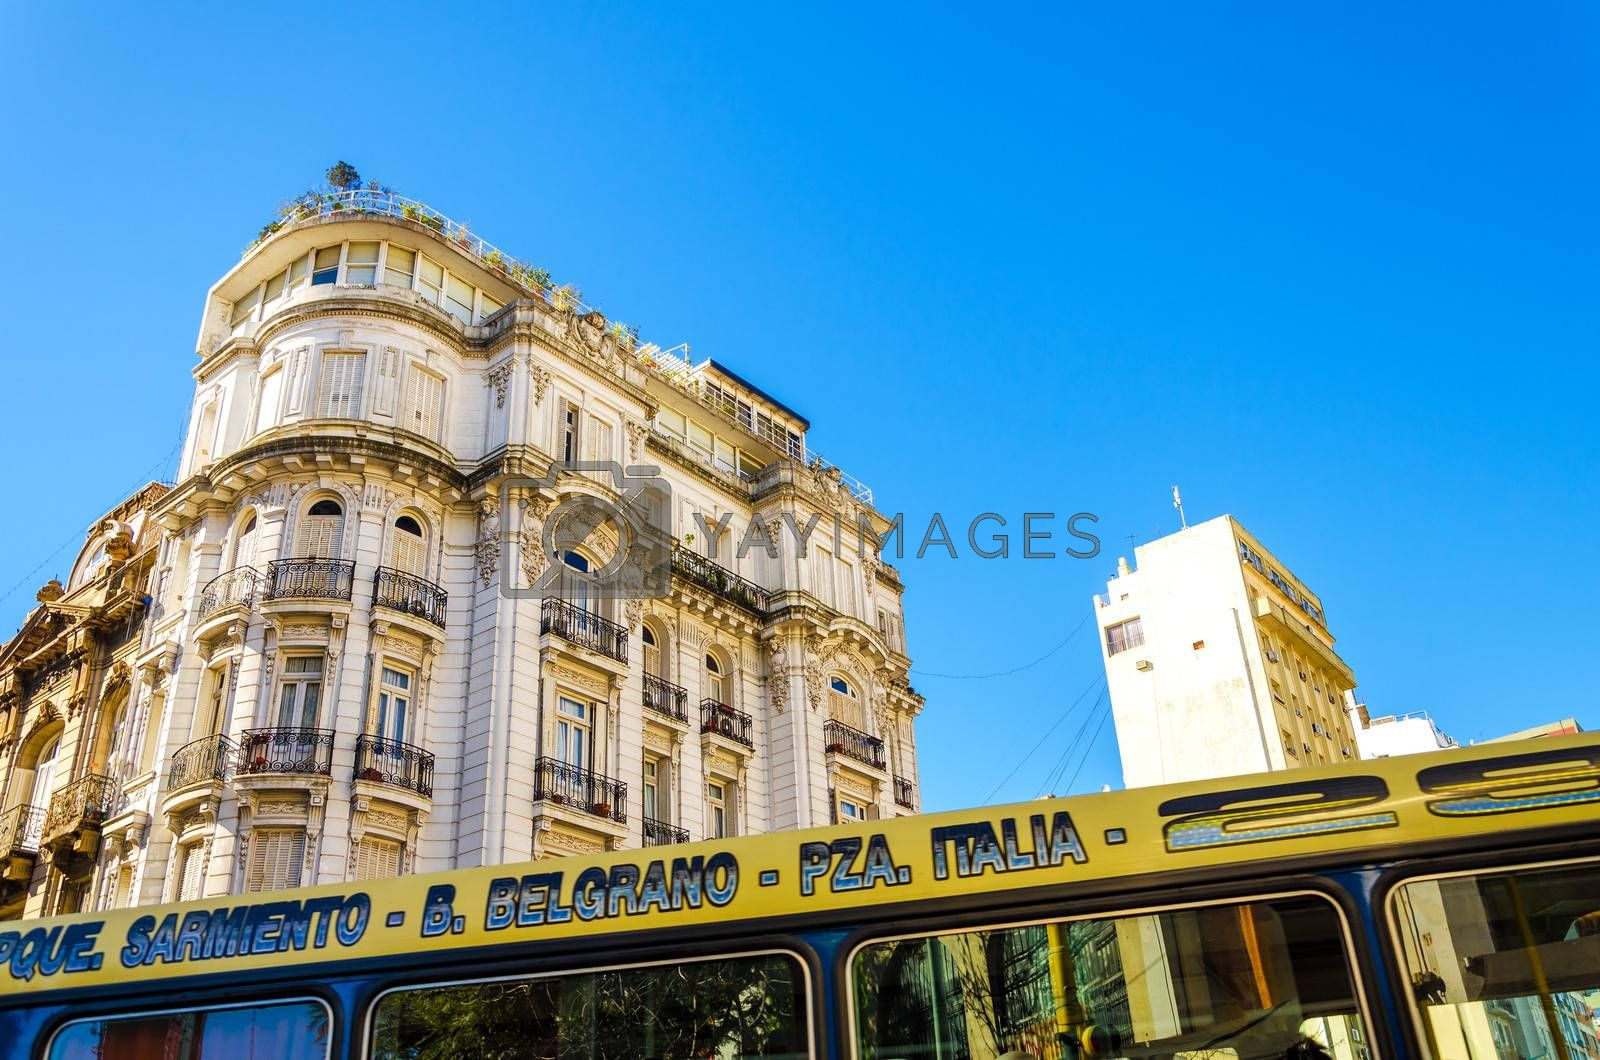 Old French style architecture in San Telmo neighborhood of Buenos Aires with a bus passing below